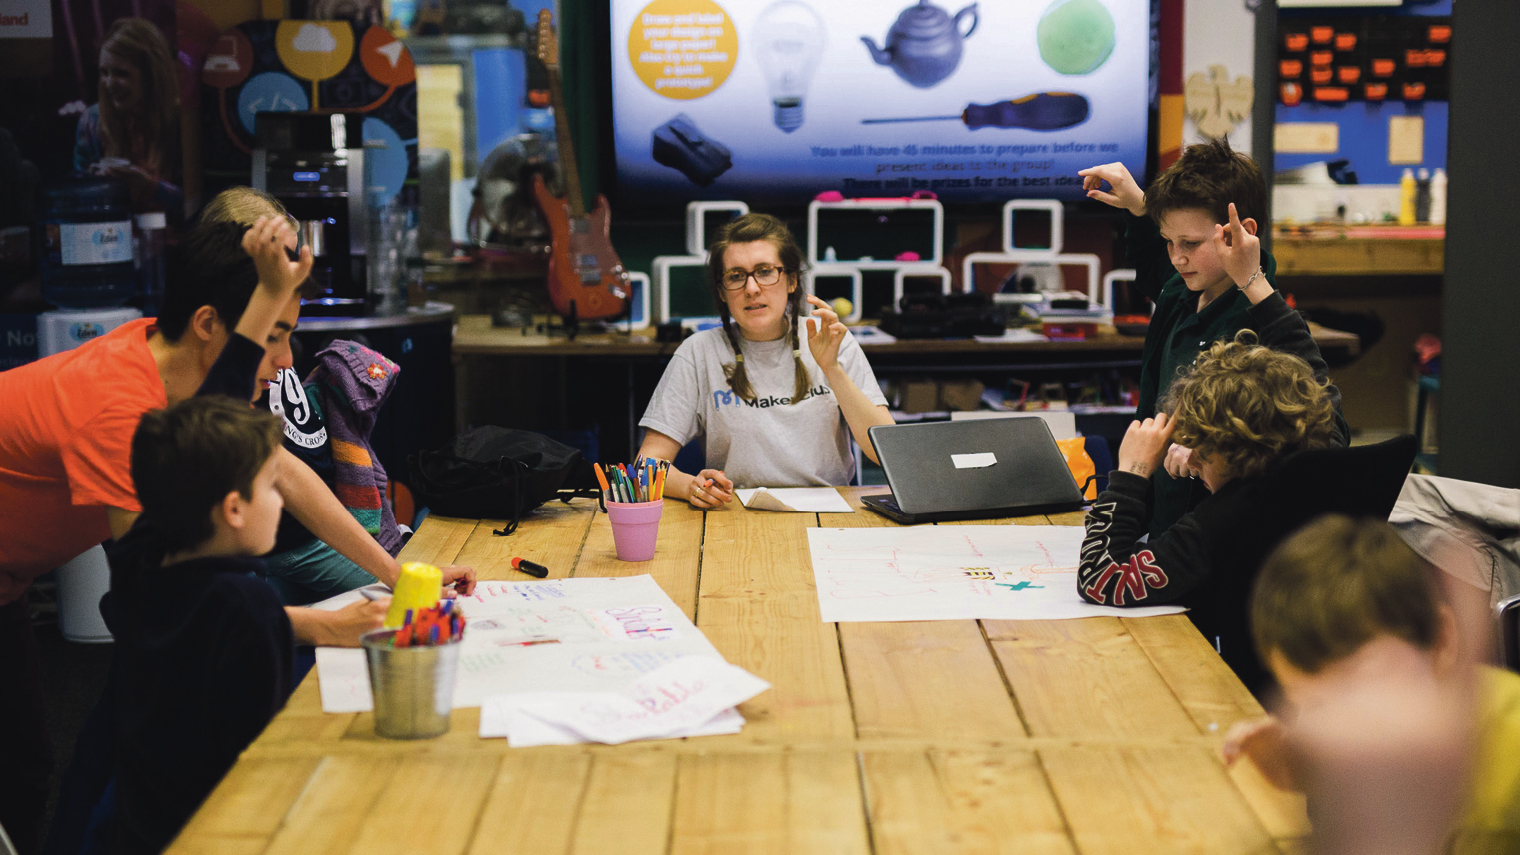 MakerClub takes after-school sessions to teach children aged nine to fourteen to build robots, use 3D printers and learn to code